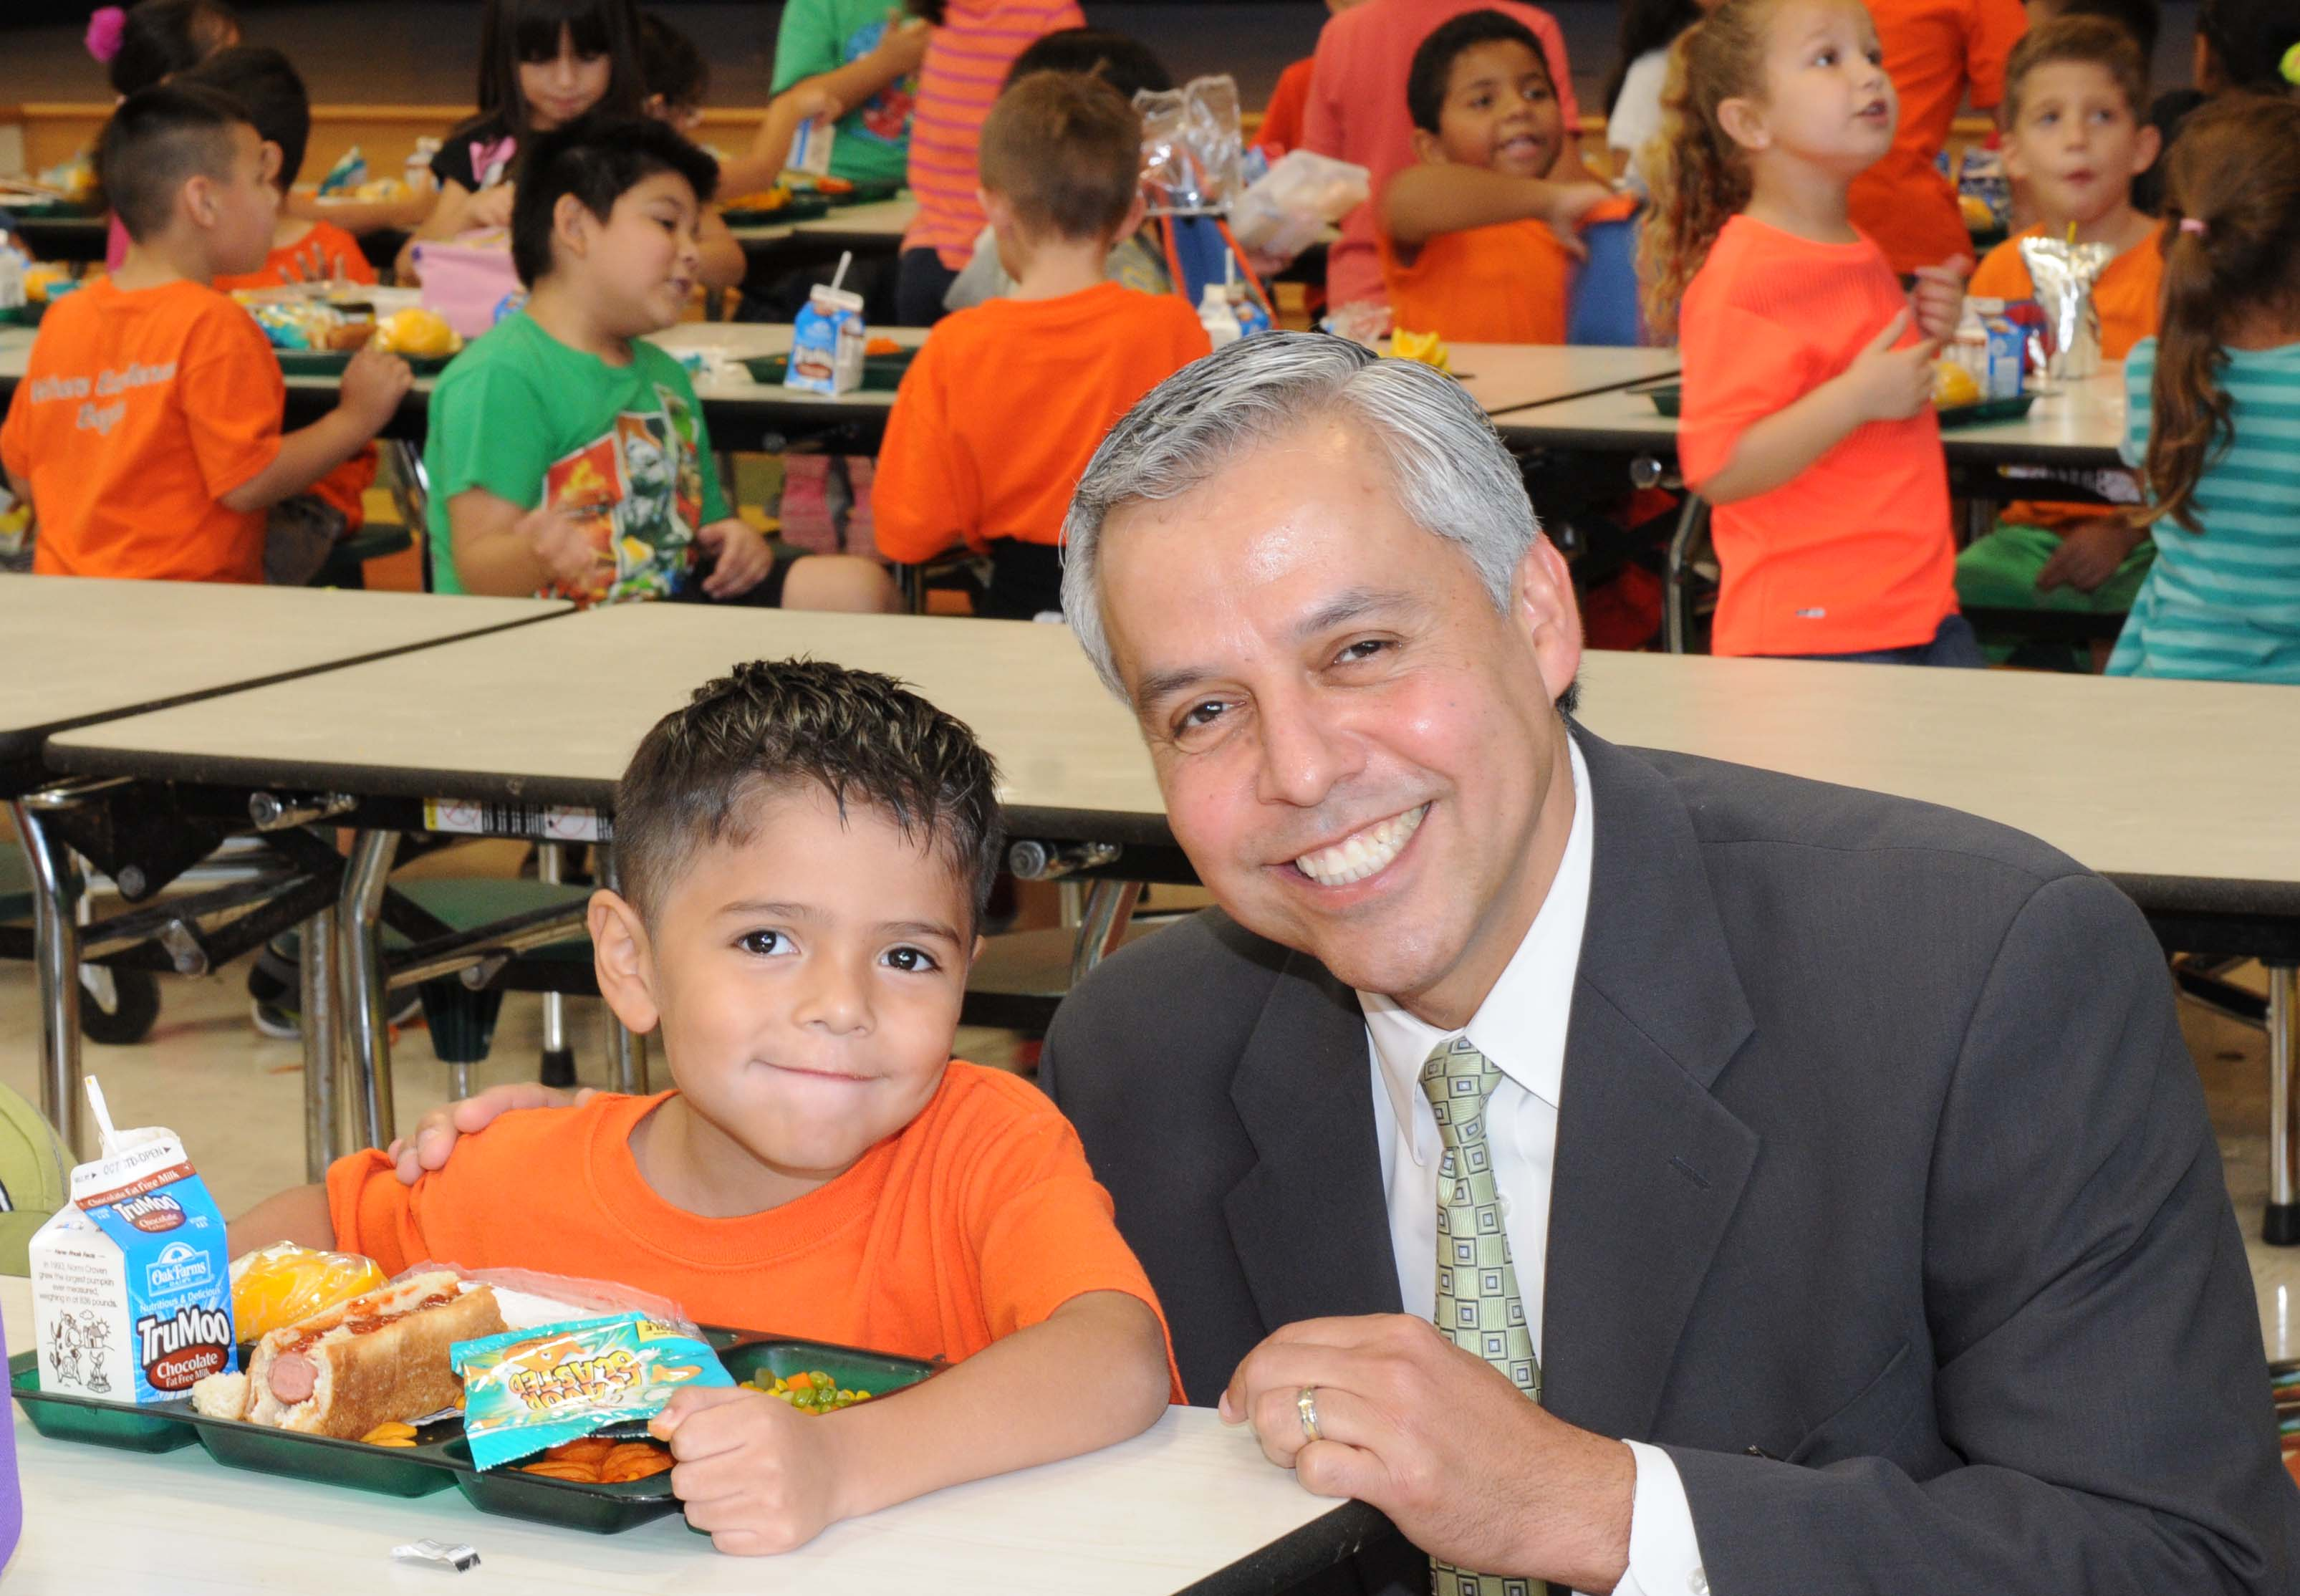 HCISD Board of Trustees approve free breakfast and lunch program for all students, program to start during the 2014 – 2015 school year